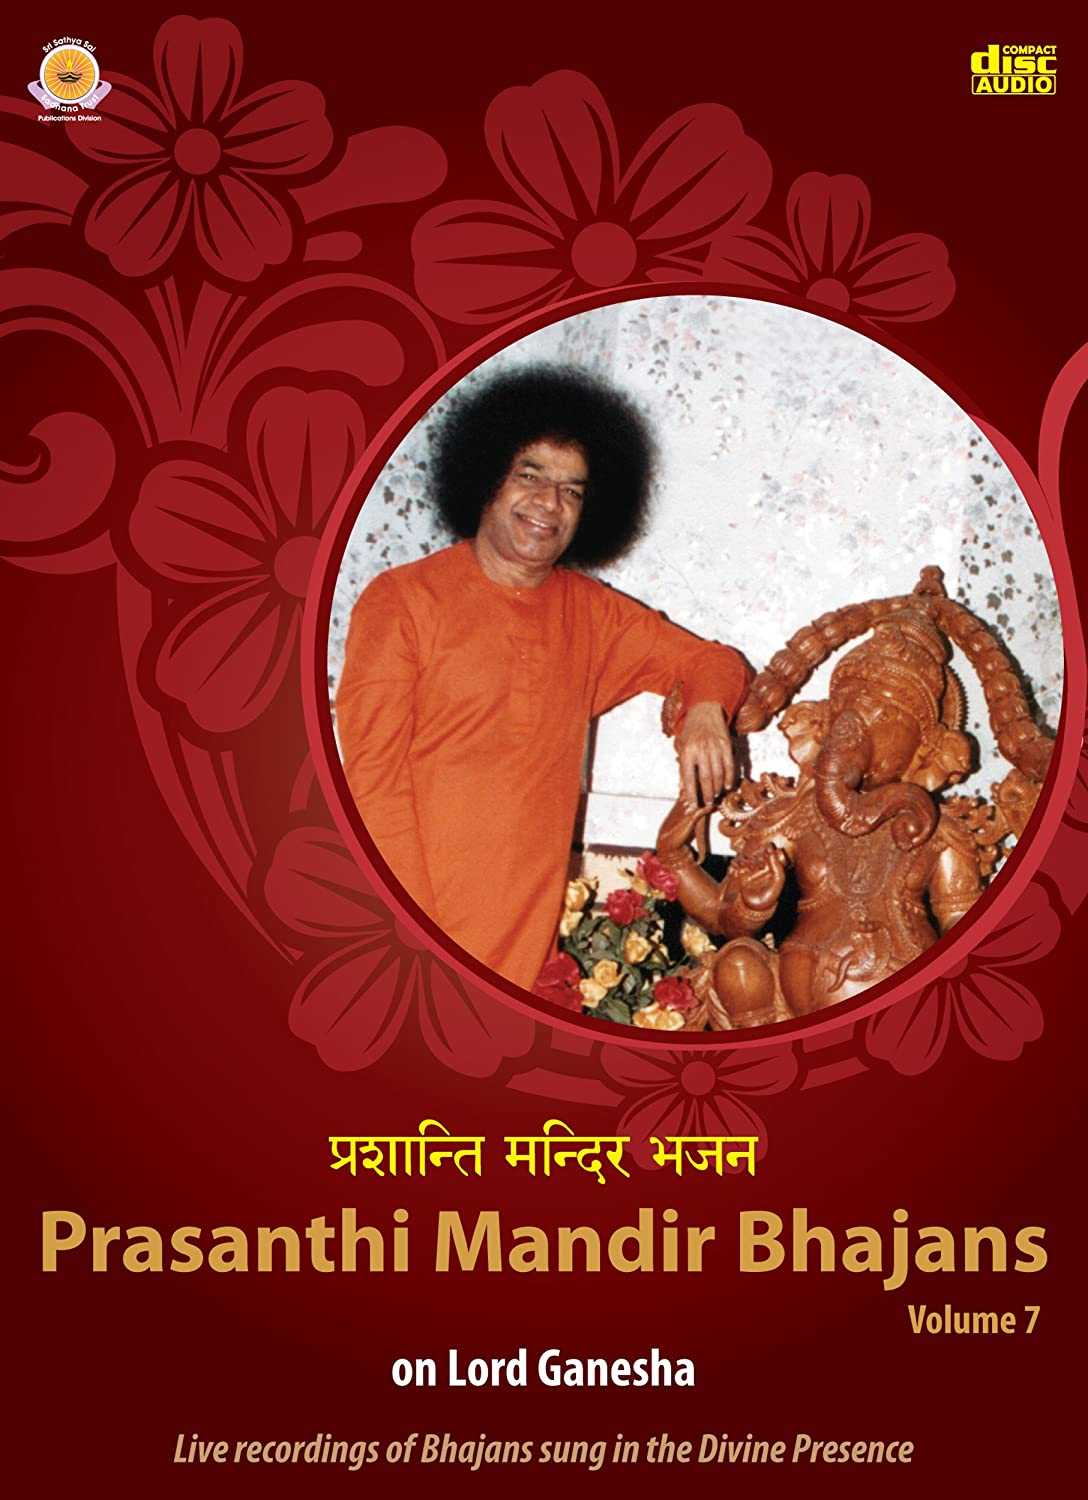 Sai Students - Prasanthi Mandir Bhajans - Volume 7 - Amazon com Music